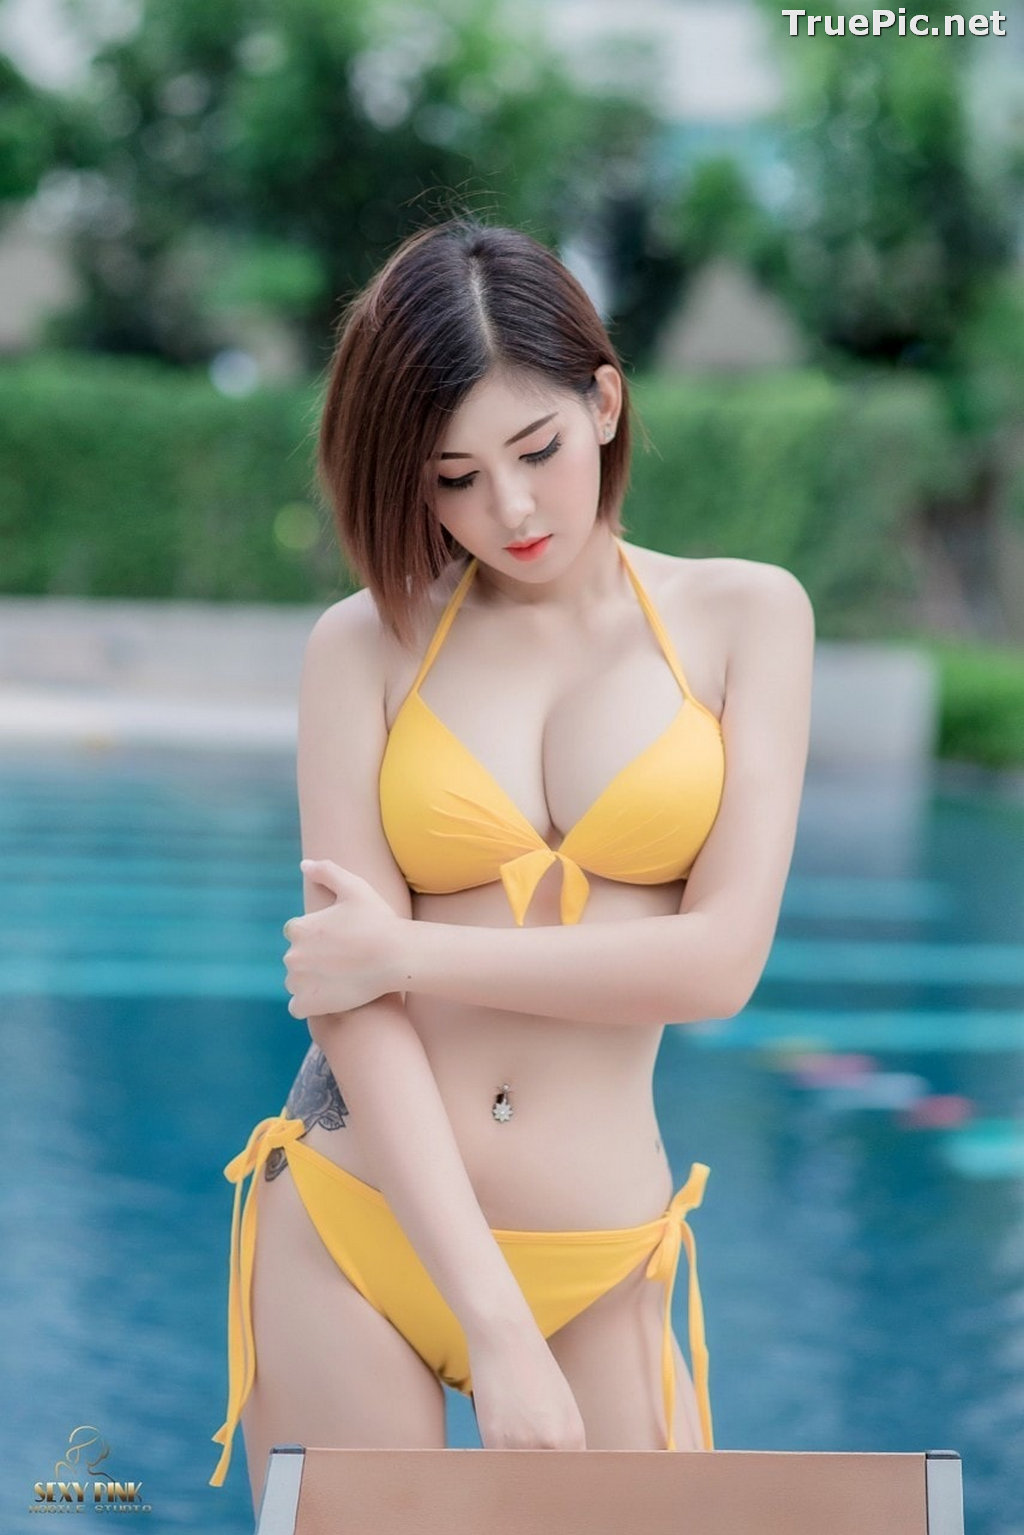 Image Thailand Model - Pharada Baokhum - Yellow Bikini In The Swimming Pool - TruePic.net - Picture-8